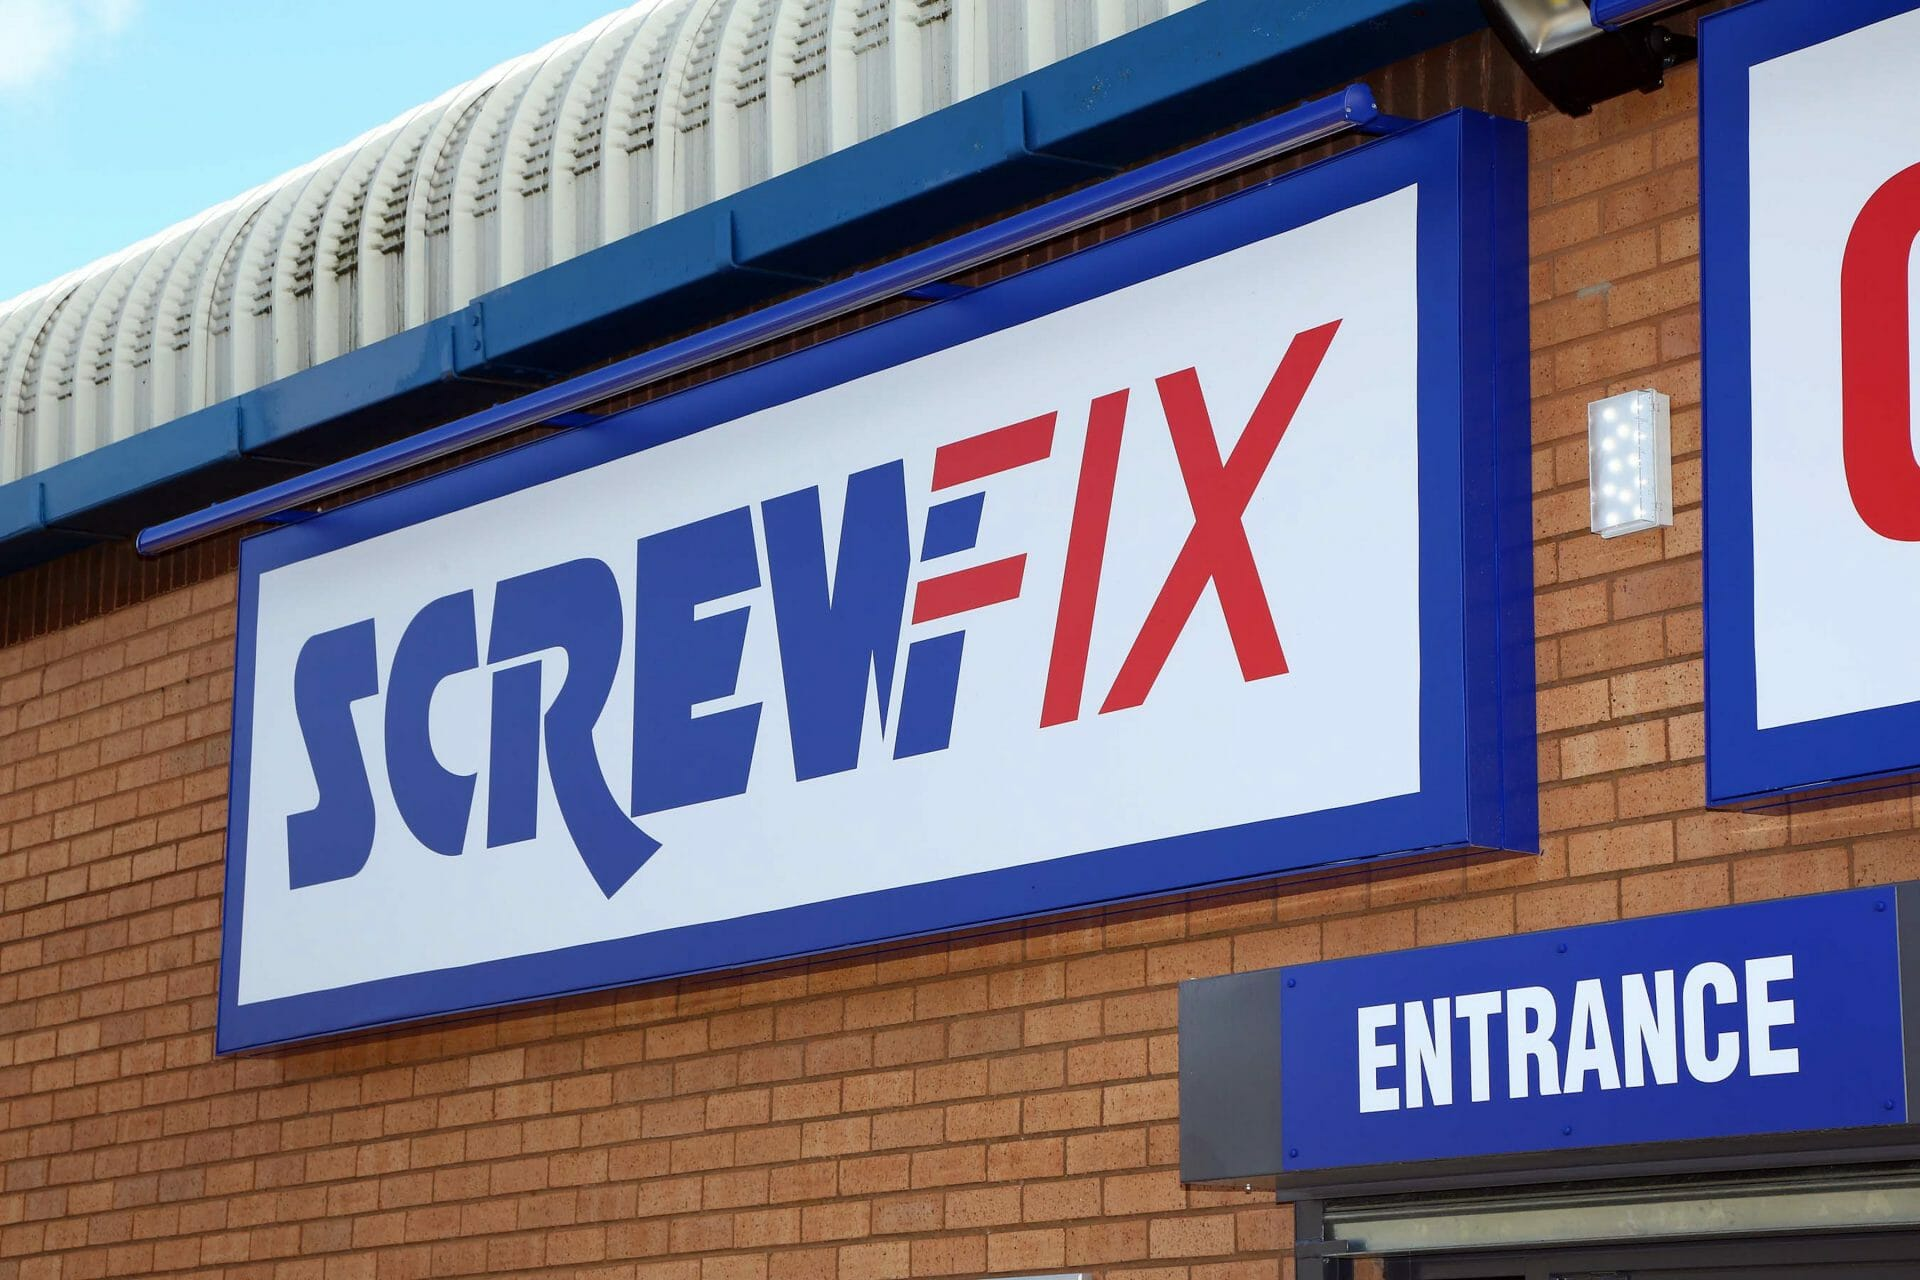 Screwfix store front